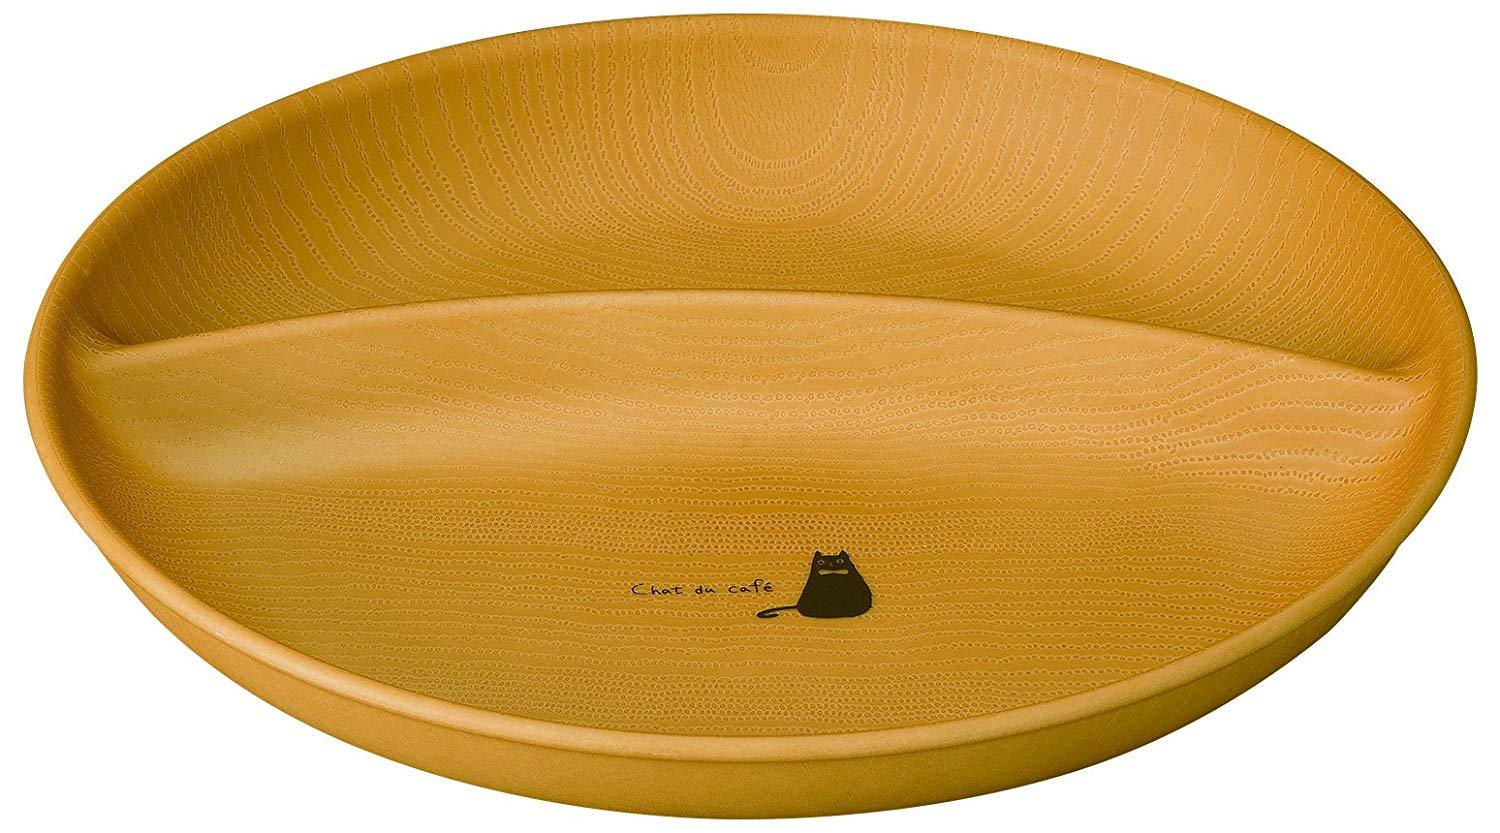 Chat du Café Divided Plate | Oval by Showa - Bento&co Japanese Bento Lunch Boxes and Kitchenware Specialists